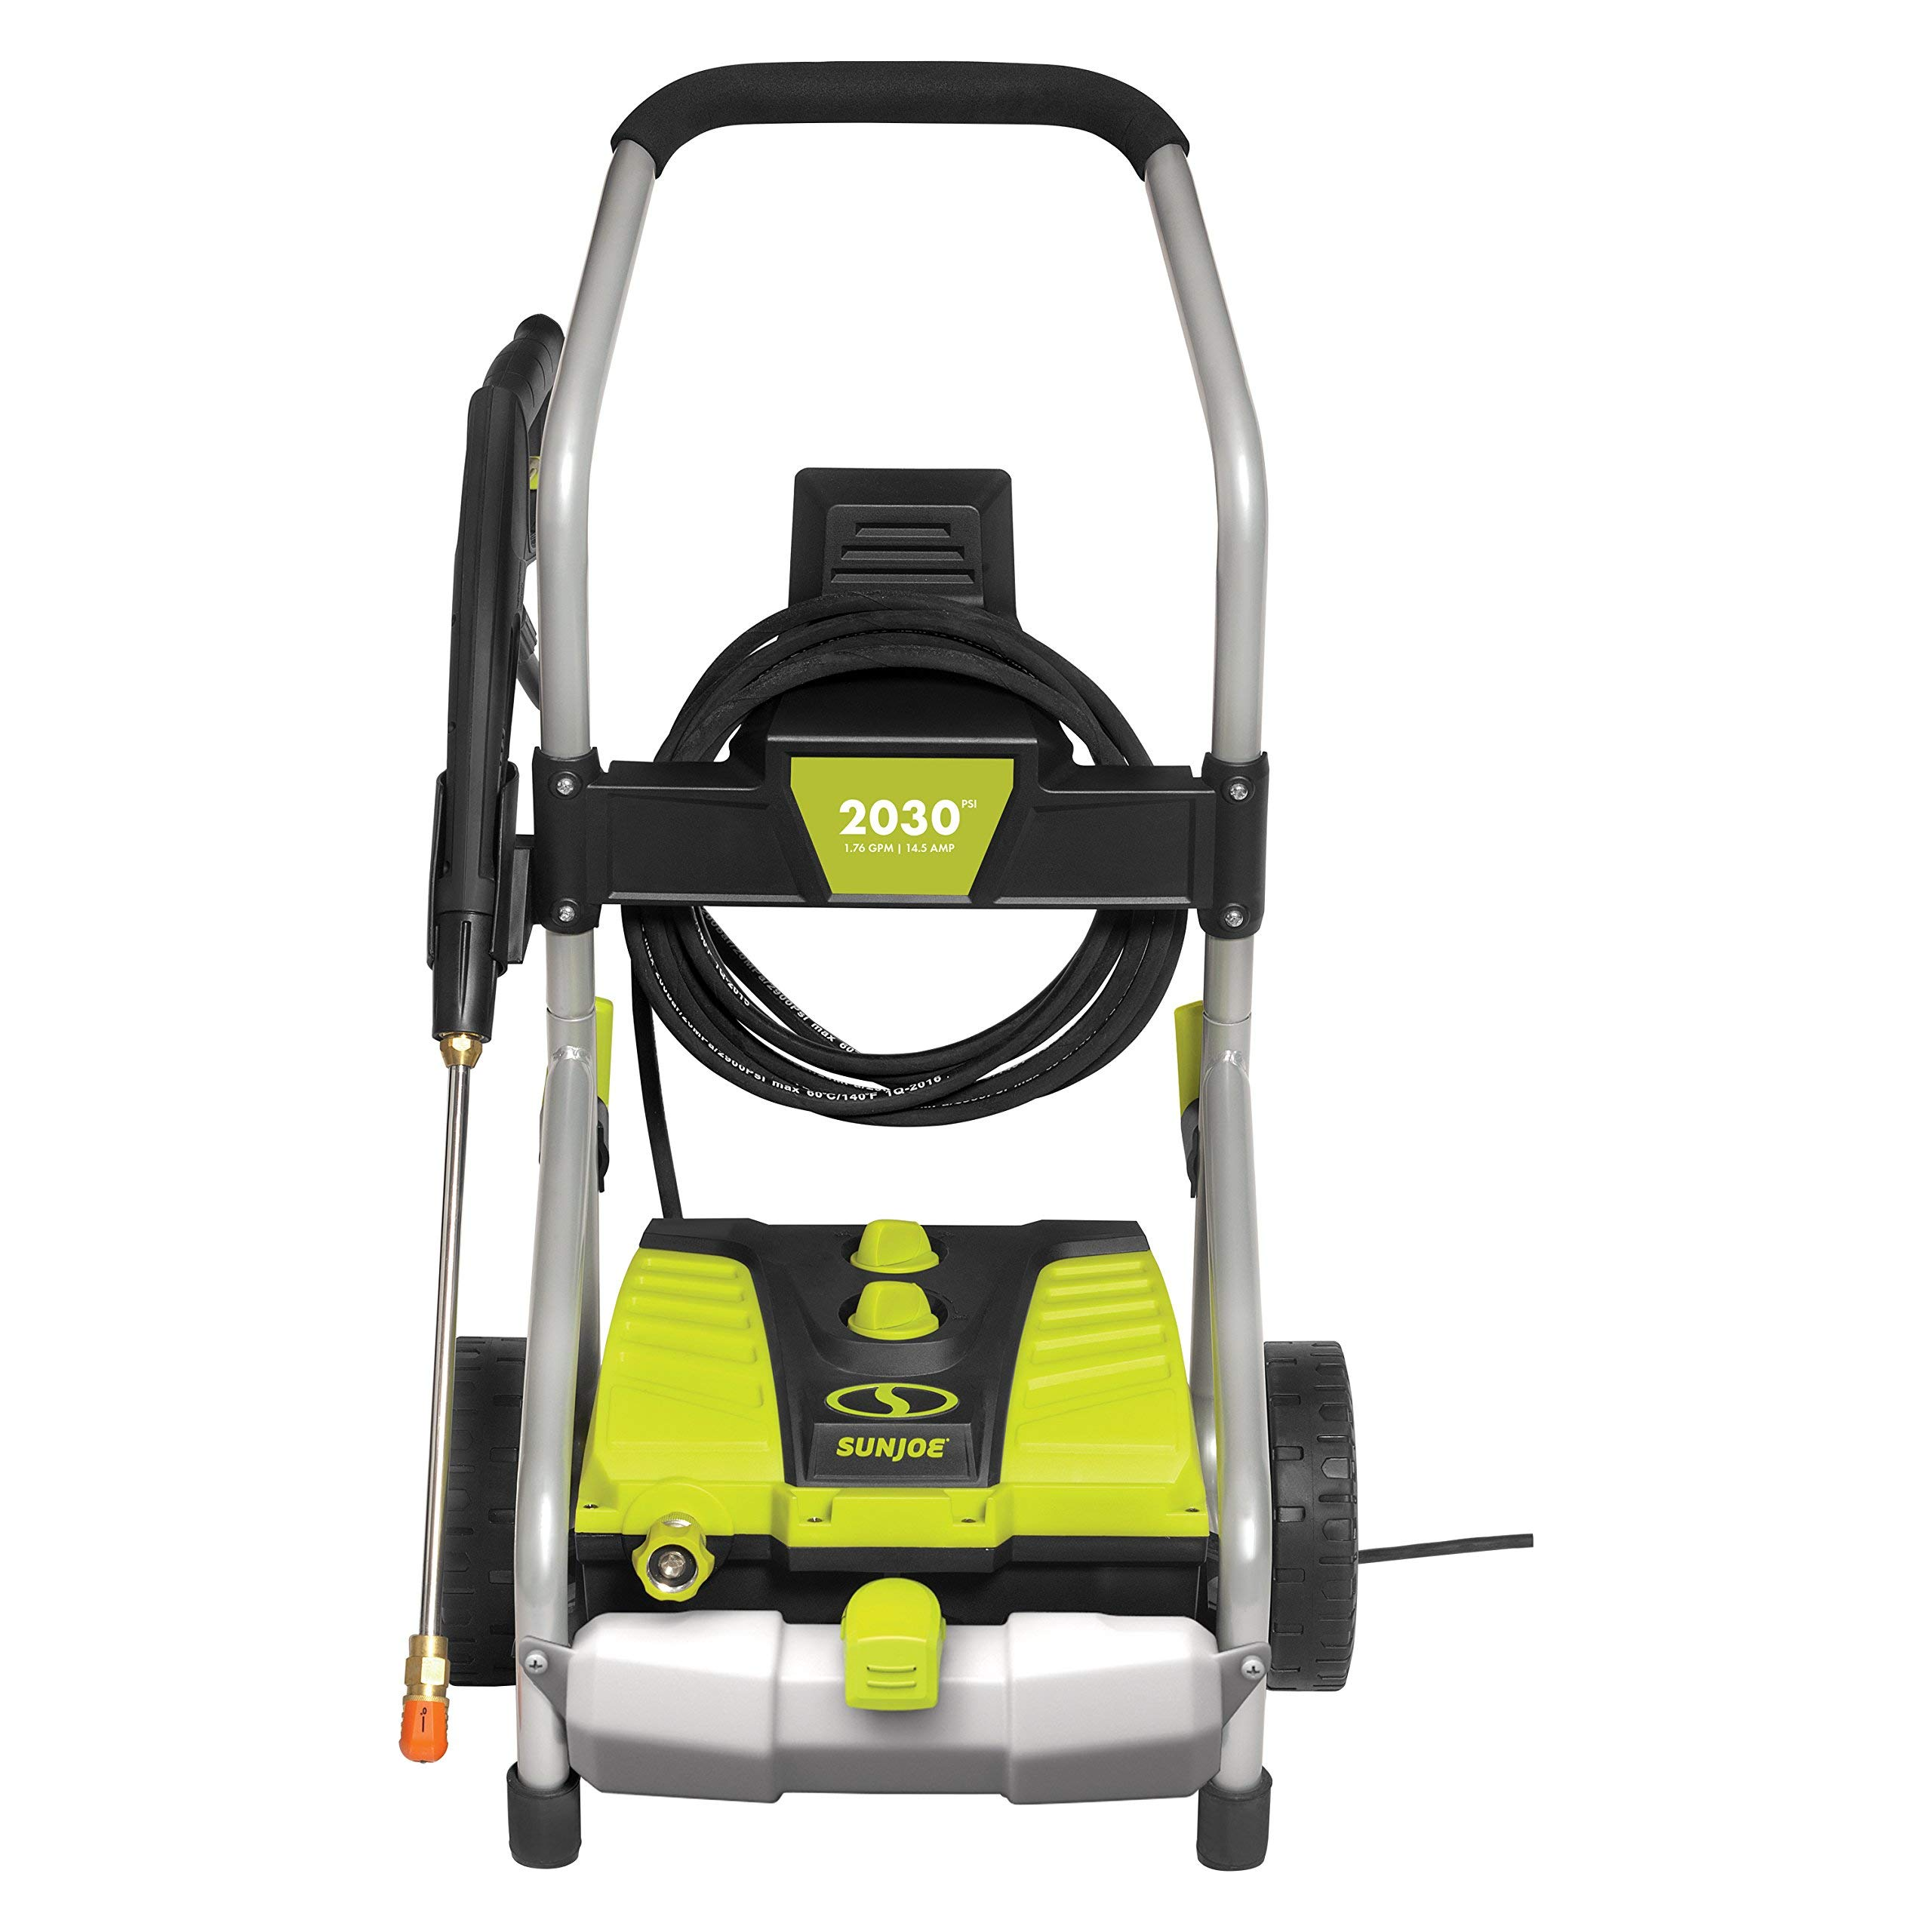 Sun Joe SPX4000 2030 PSI 1.76 GPM 14.5-Amp Electric Pressure Washer w/ Pressure-Select Technology (Renewed)